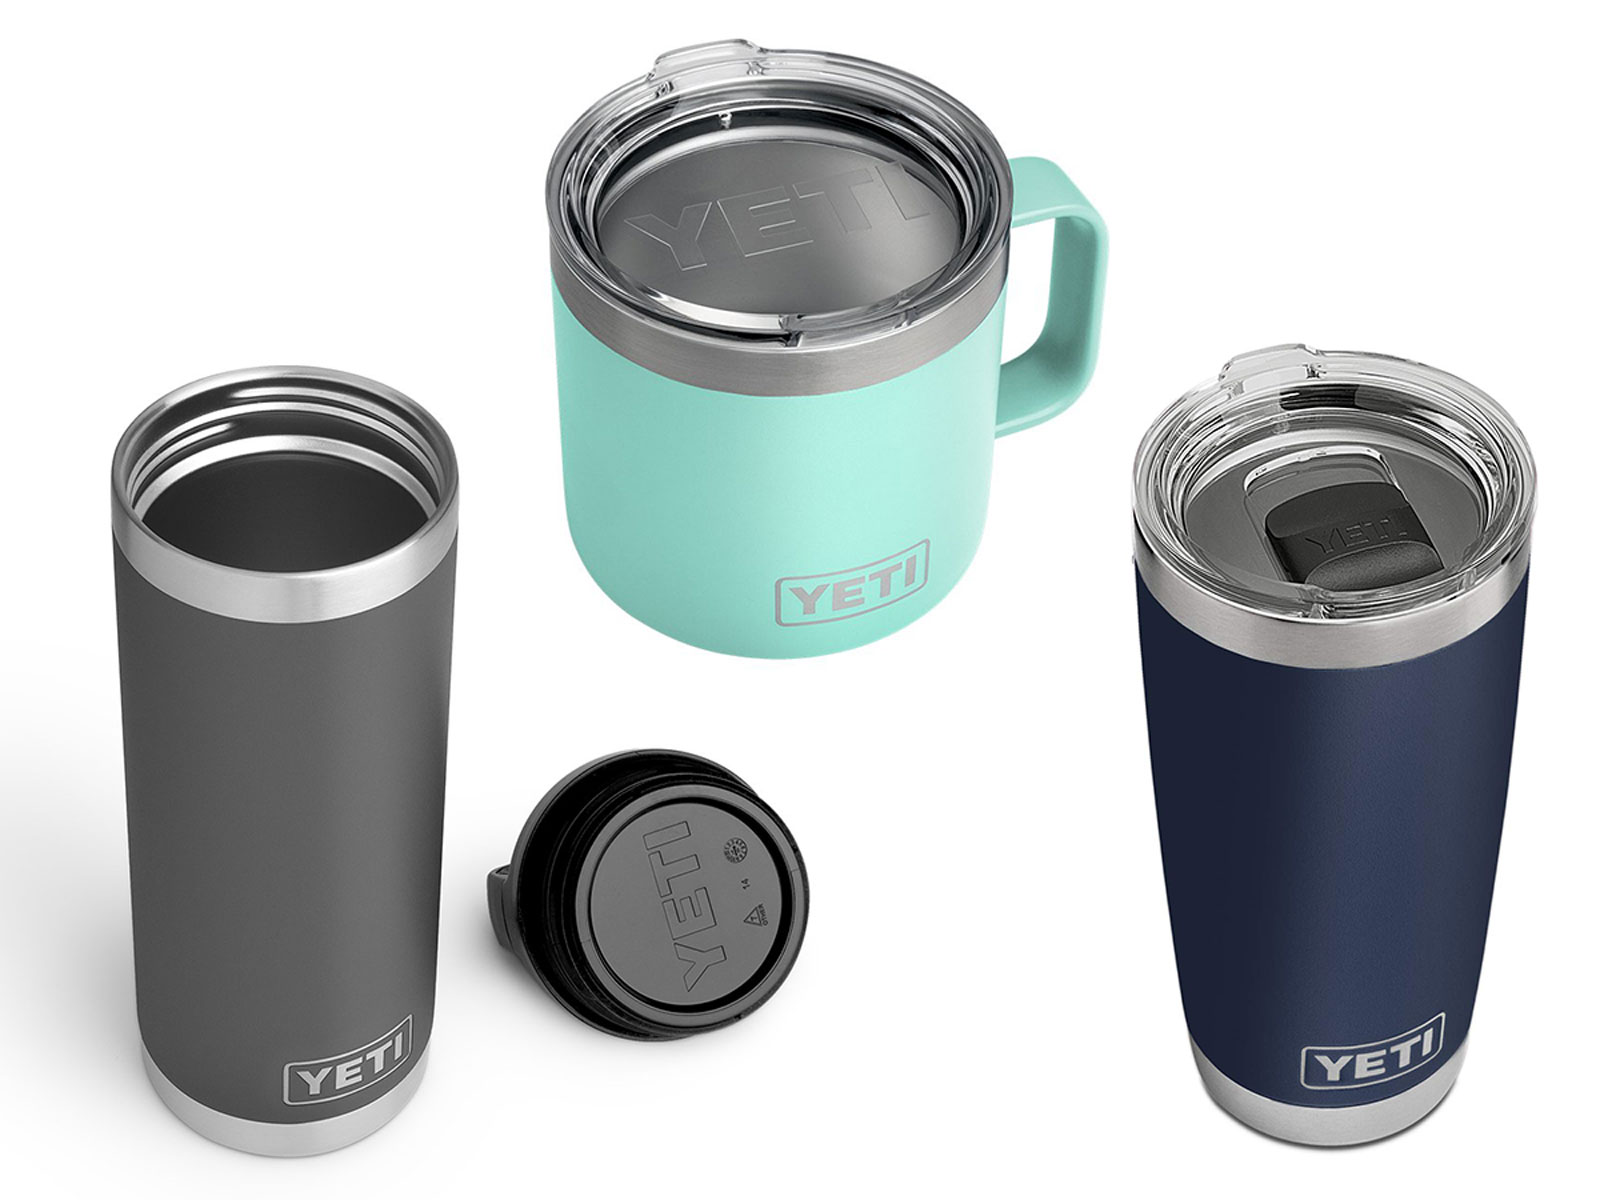 yeti coffee travel mugs